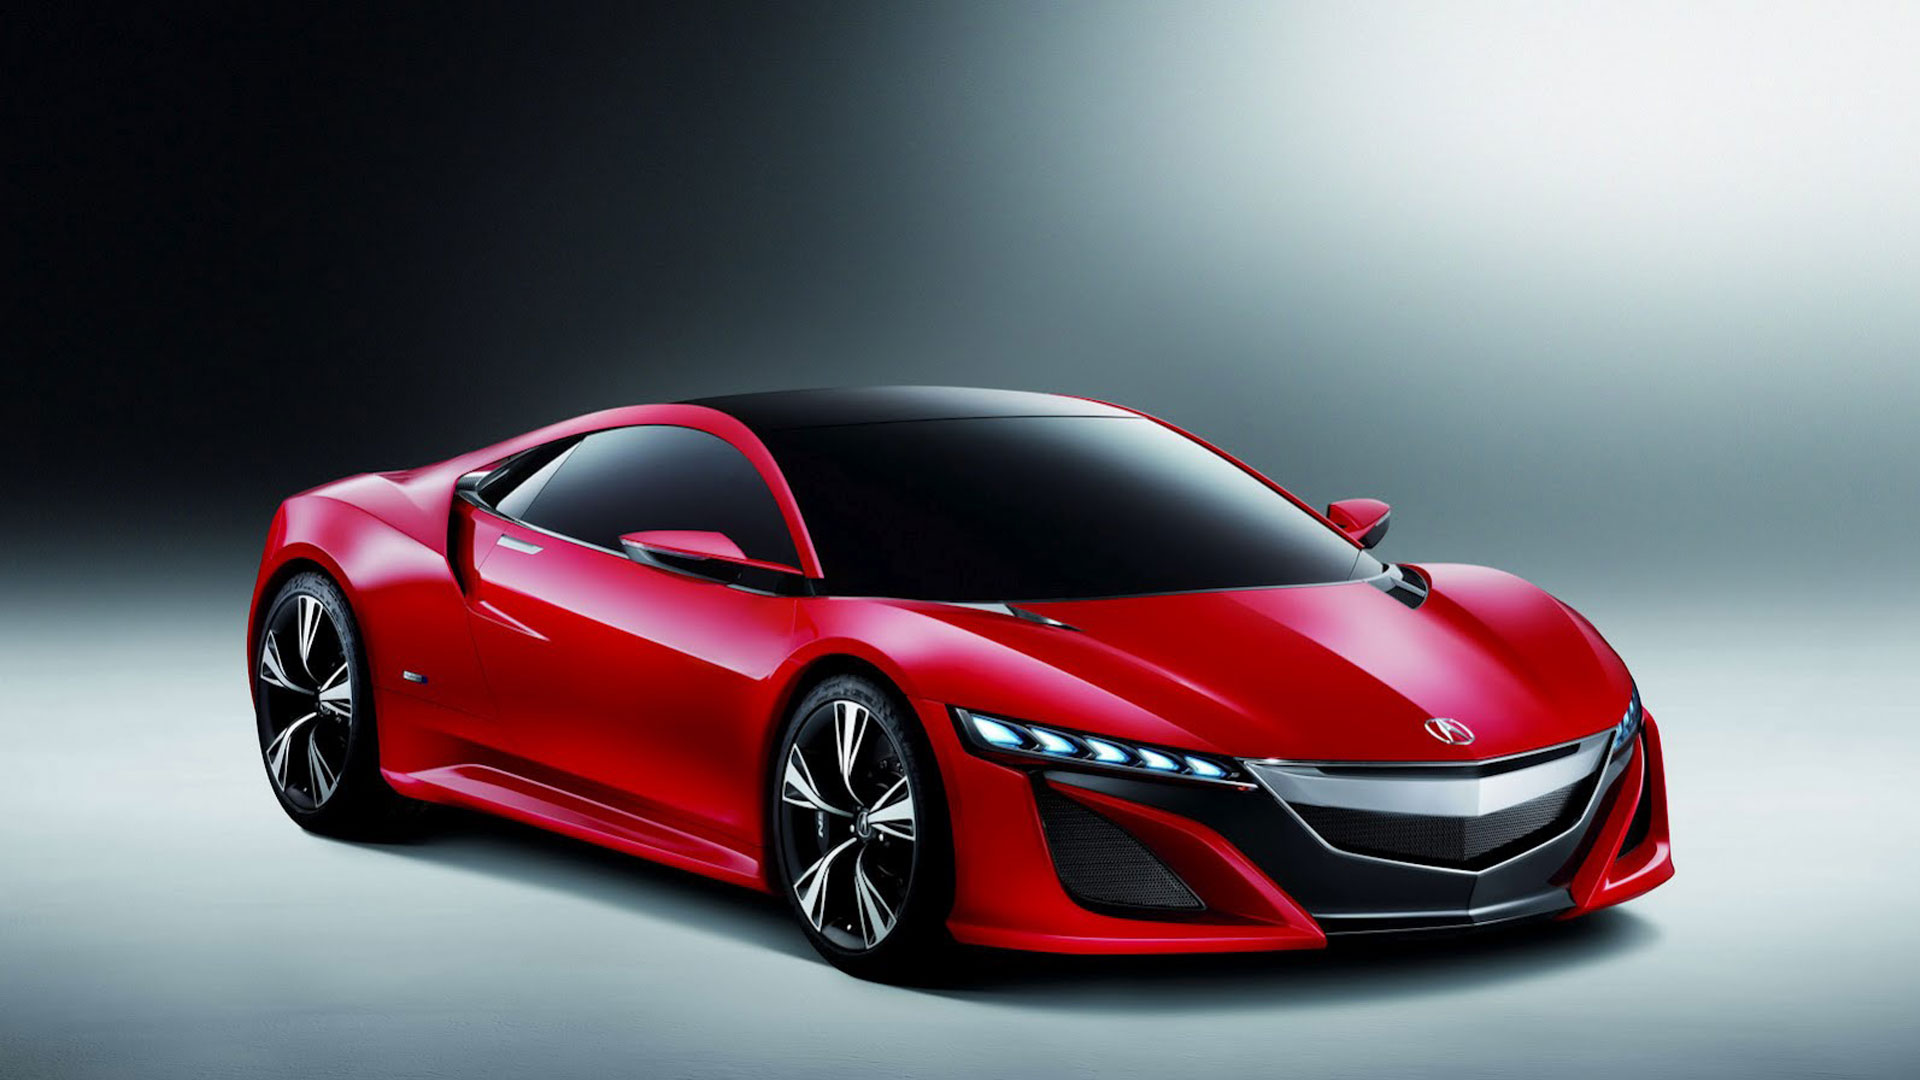 Acura NSX Wallpaper HD Backgrounds